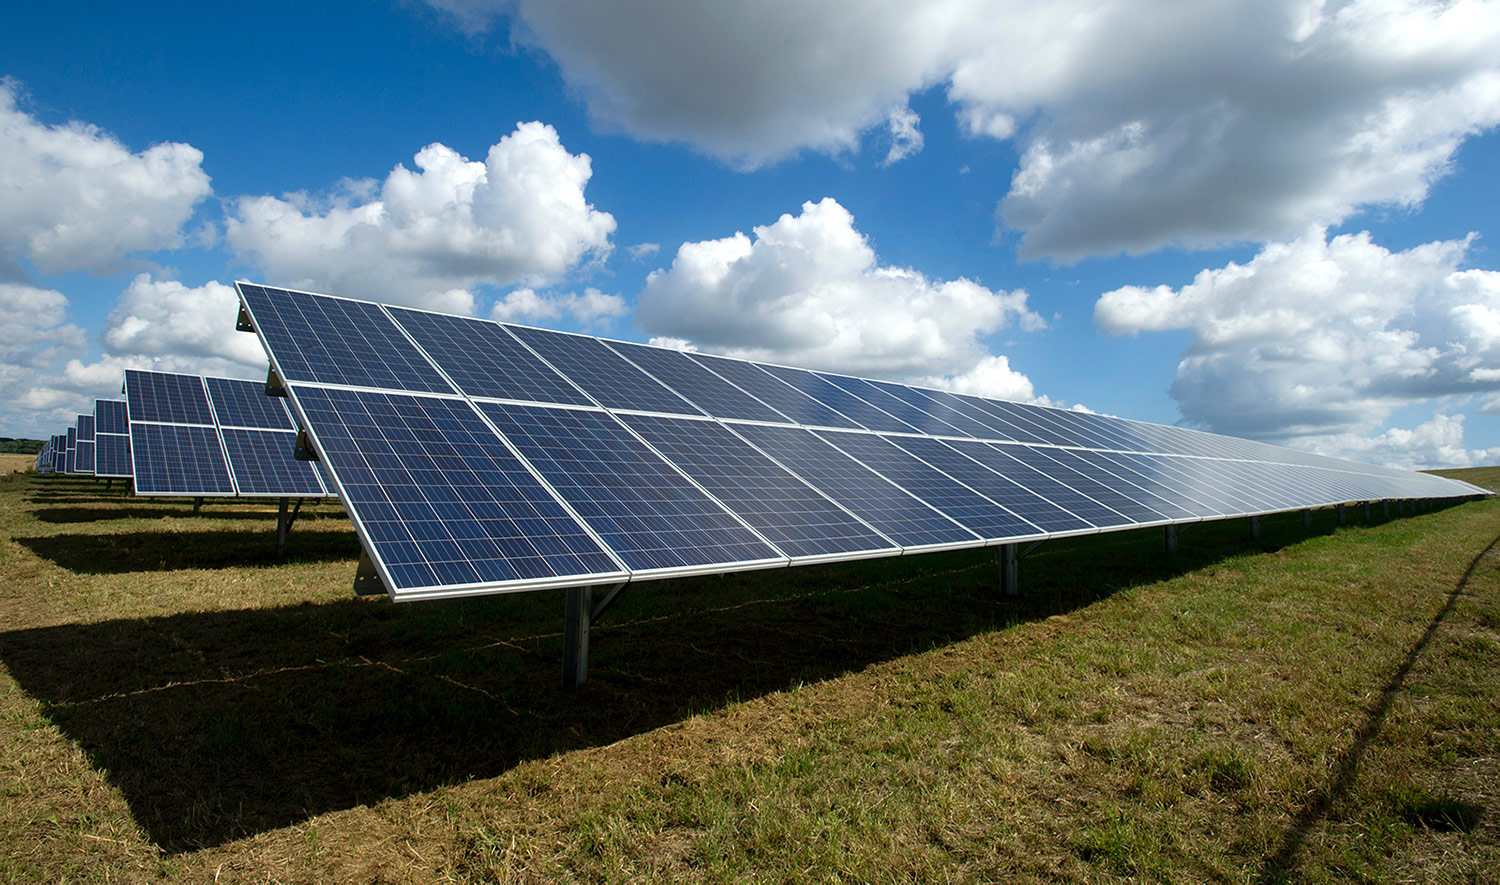 Solar panels for processing plant